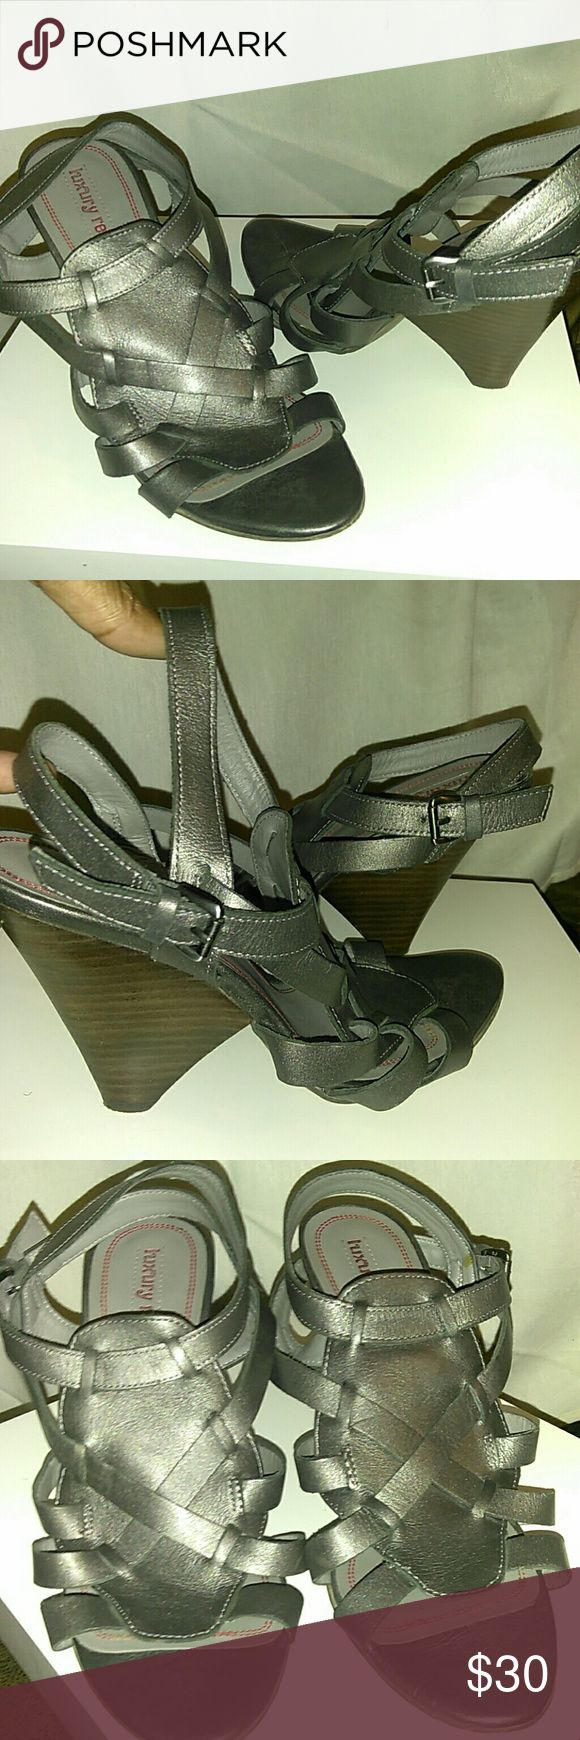 Women's shoes Luxury brand silver shoes.. Double strap around the ankle beautiful criss cross details in the front. It says 39 but fits like an 7 1/2 or 8EUC luxury rebel Shoes Sandals